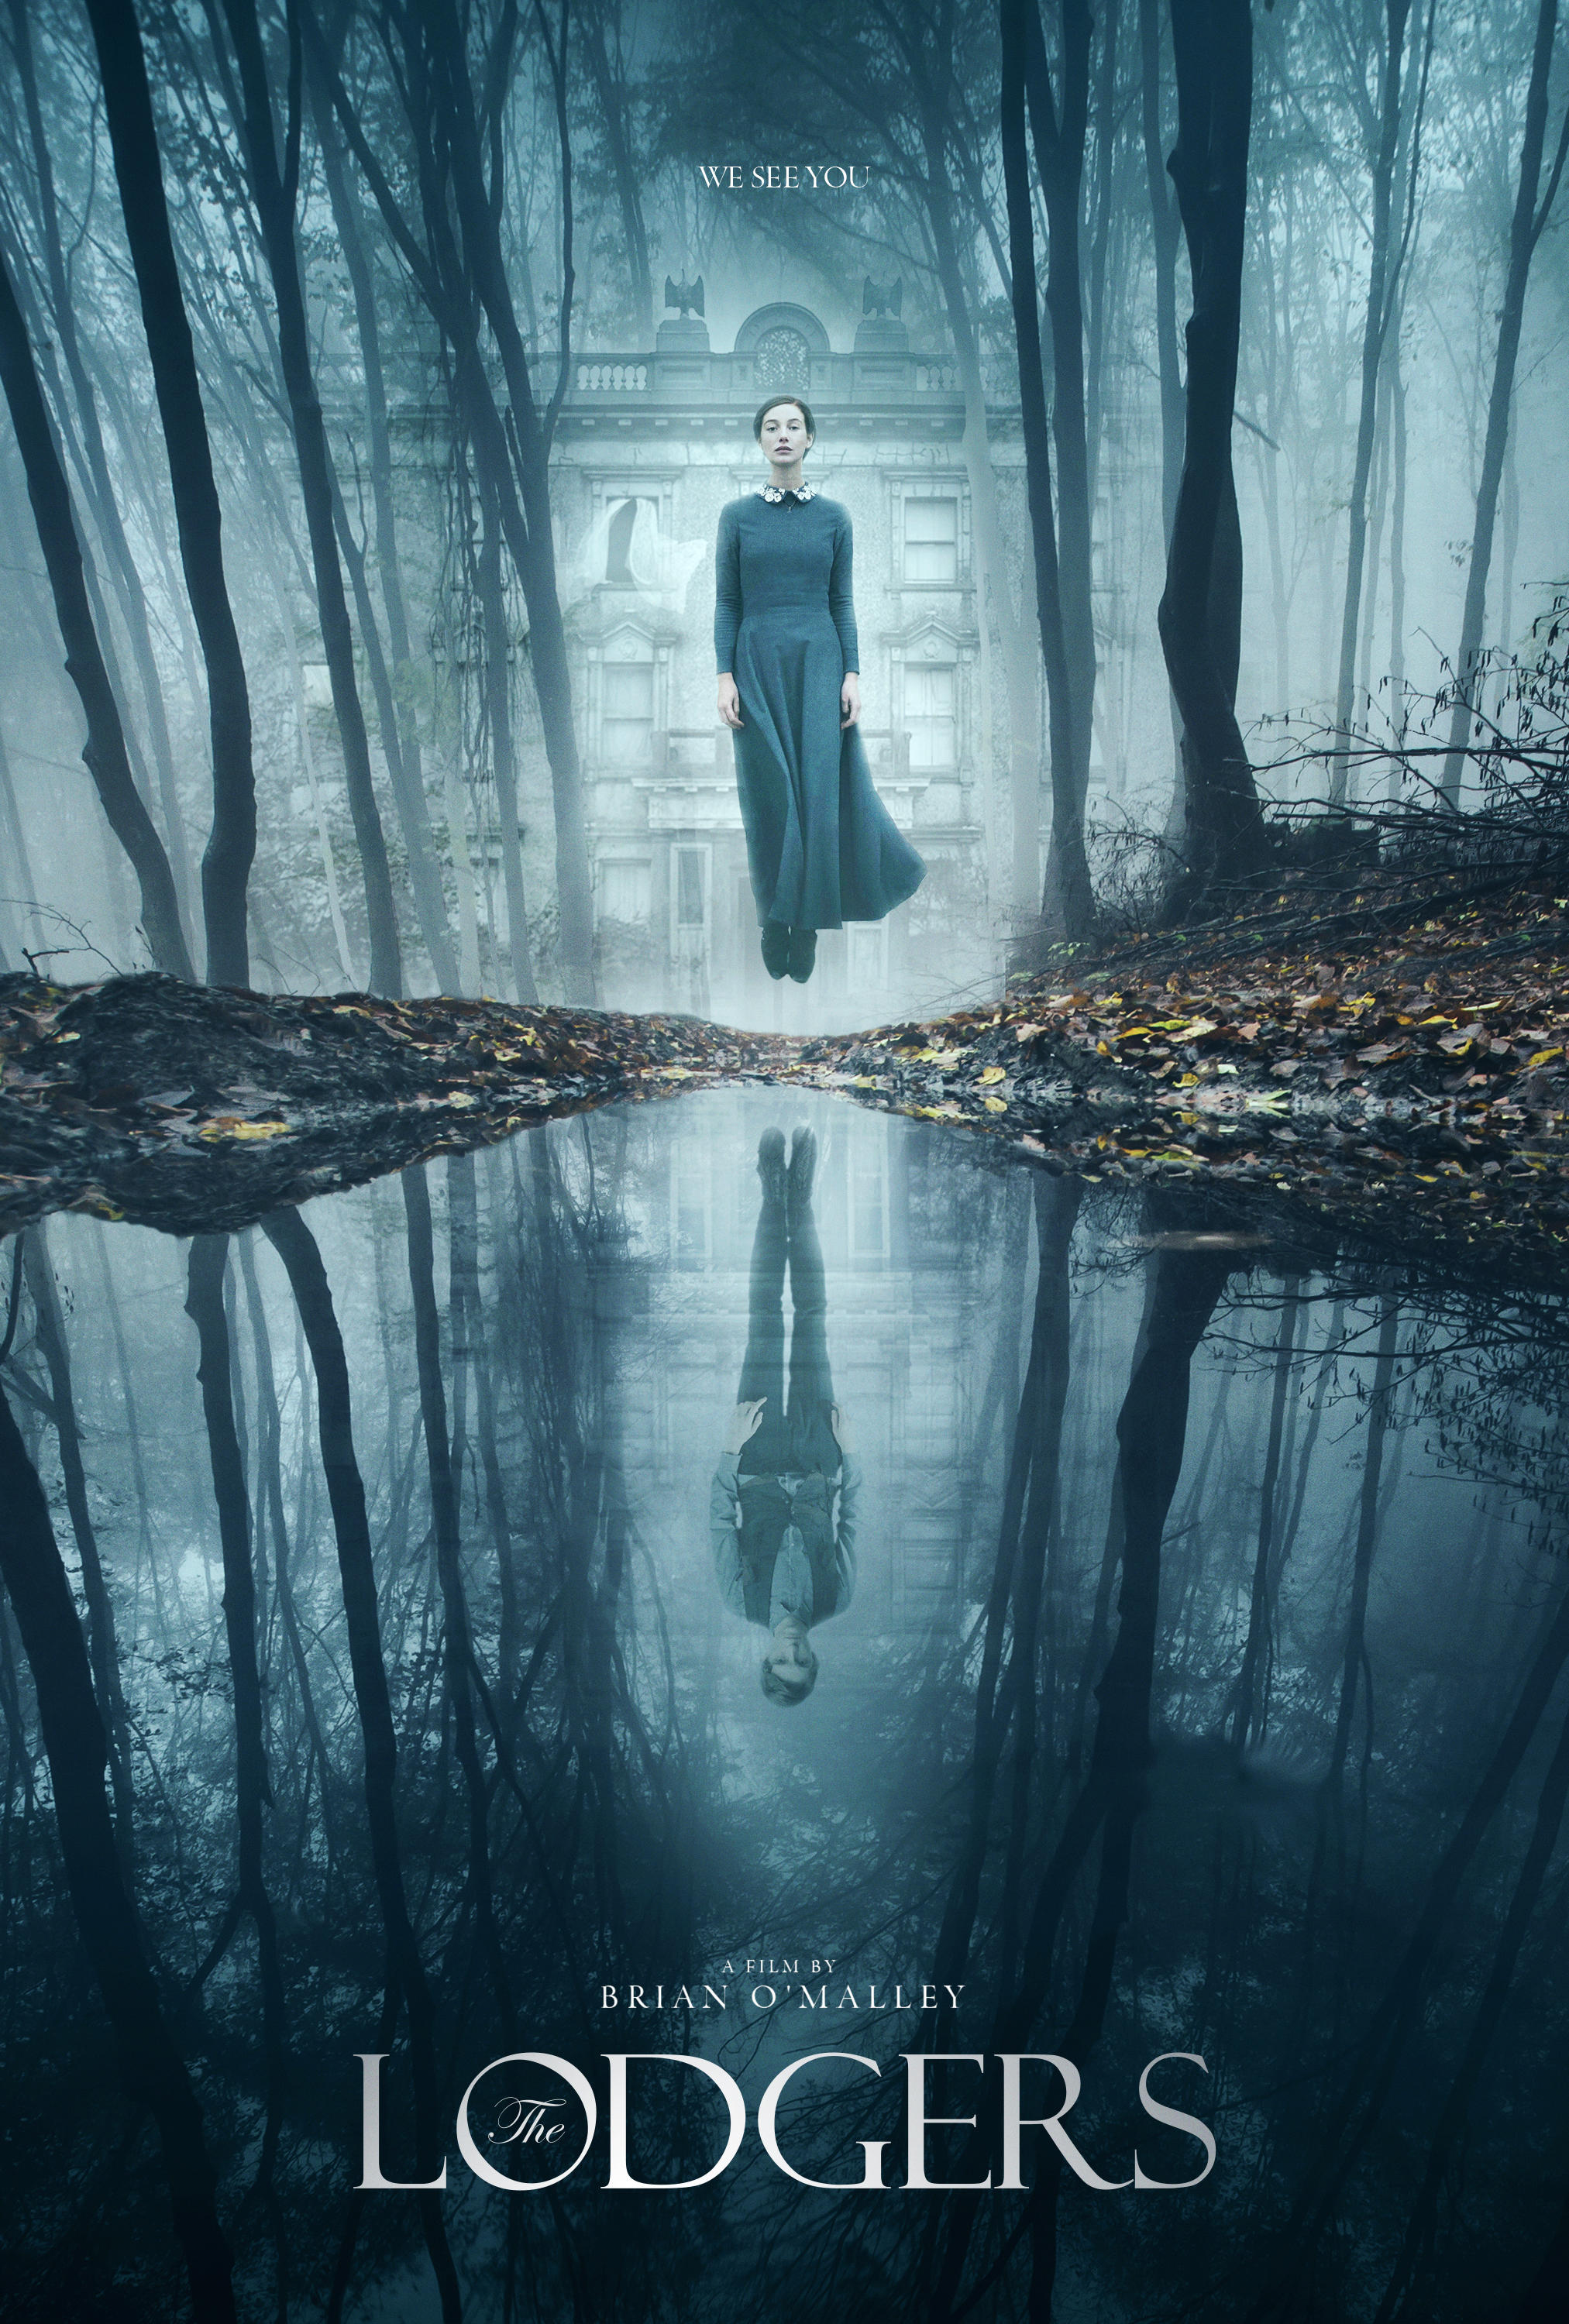 The Lodgers Glasgow FrightFest film review: twins come of age in an old dark house